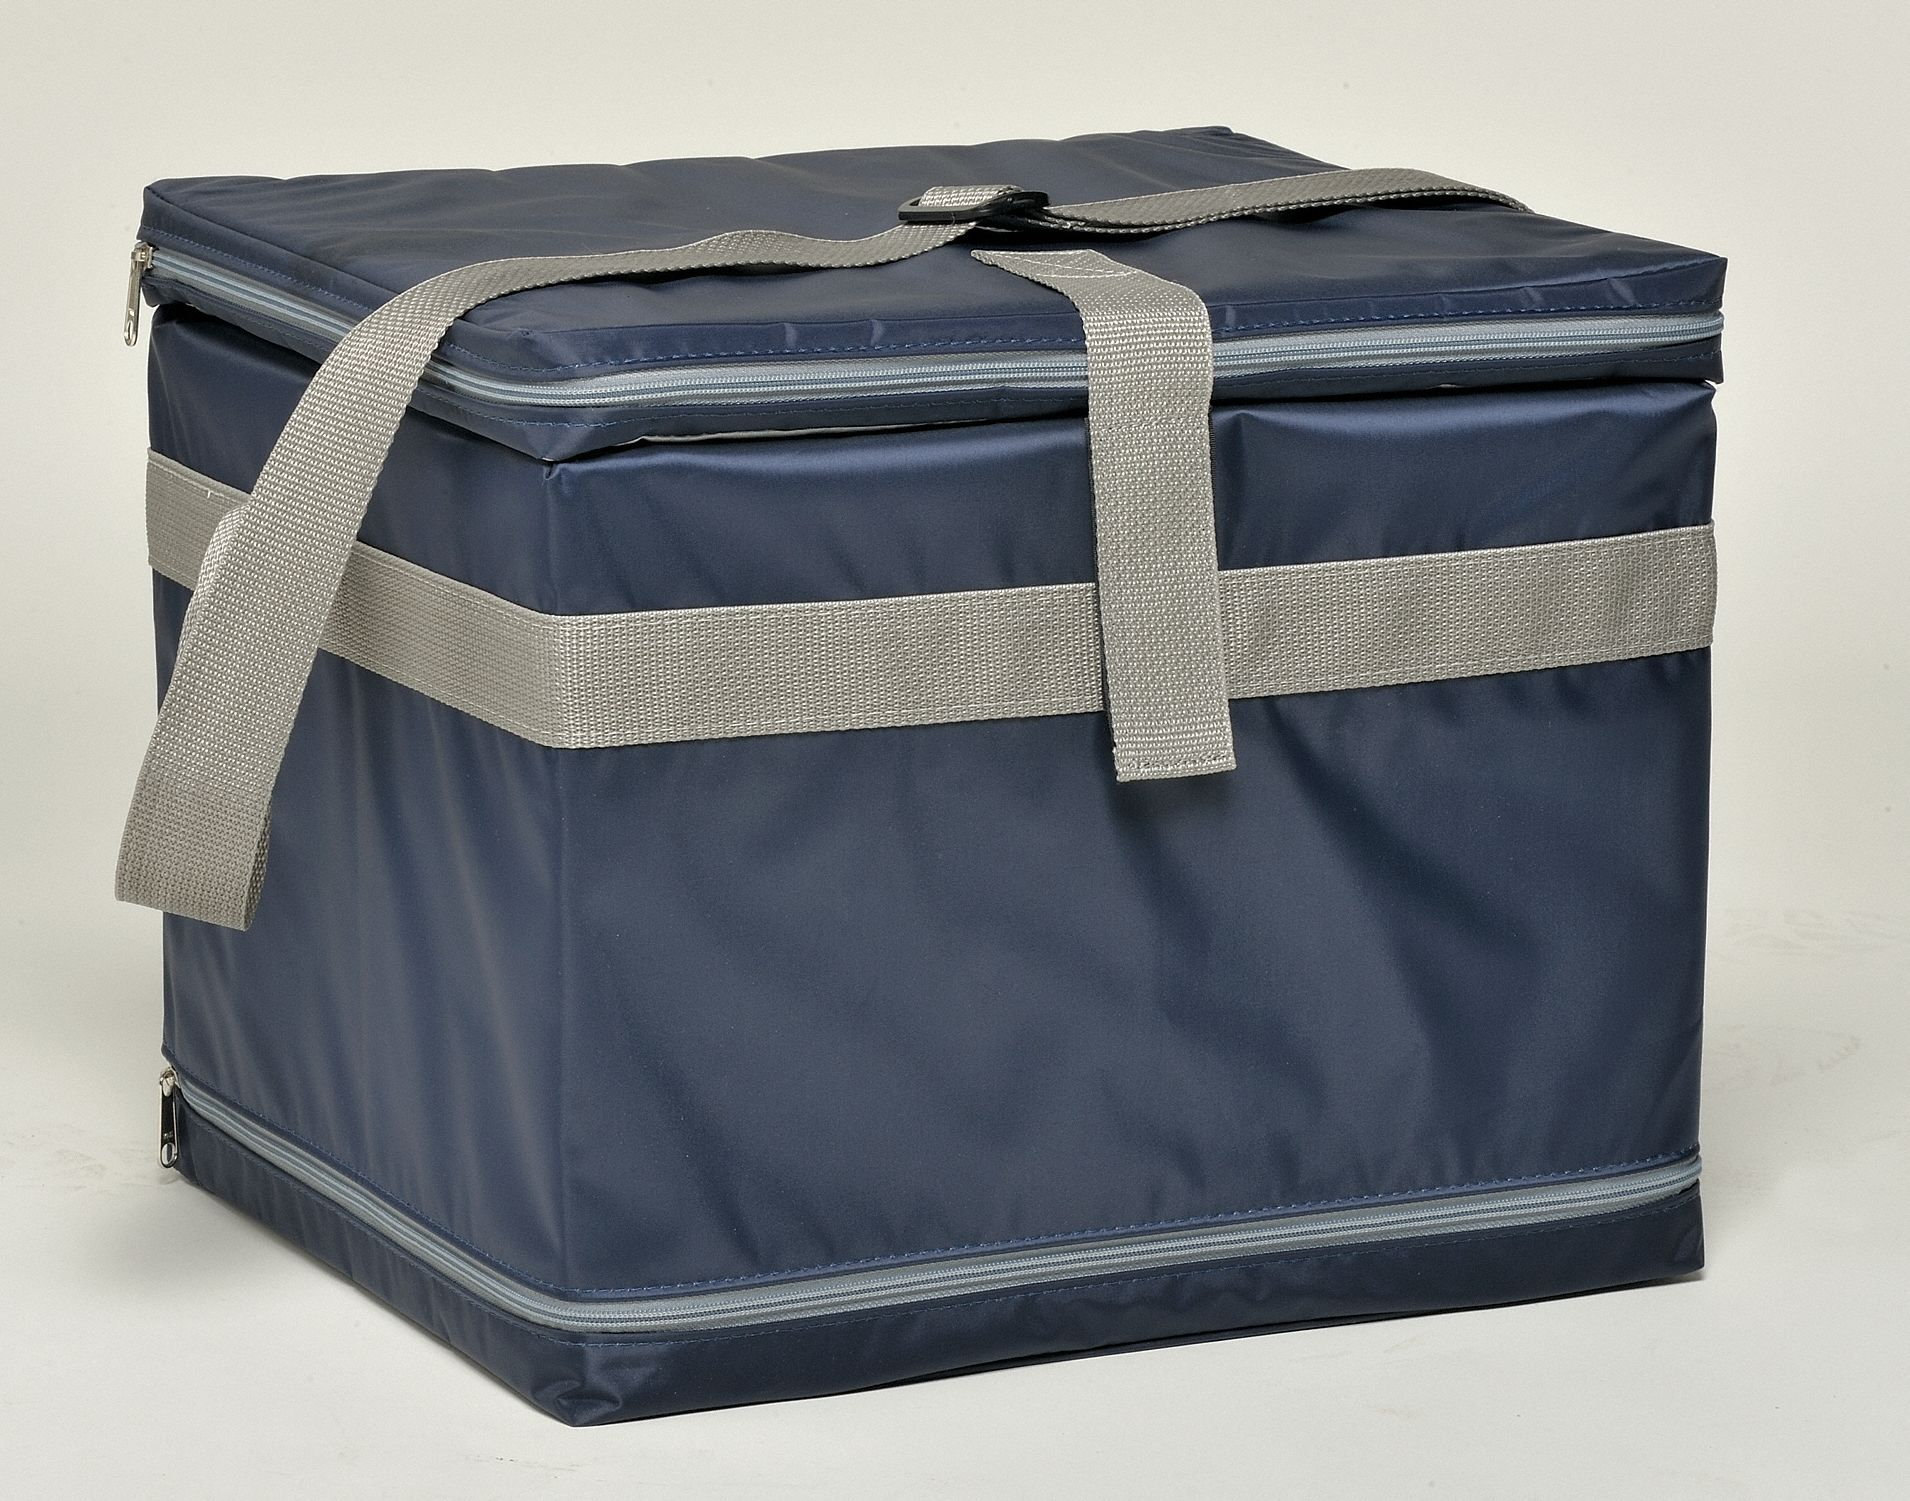 Medical Transfer Tote, 0.59 cu ft, Blue Nylon